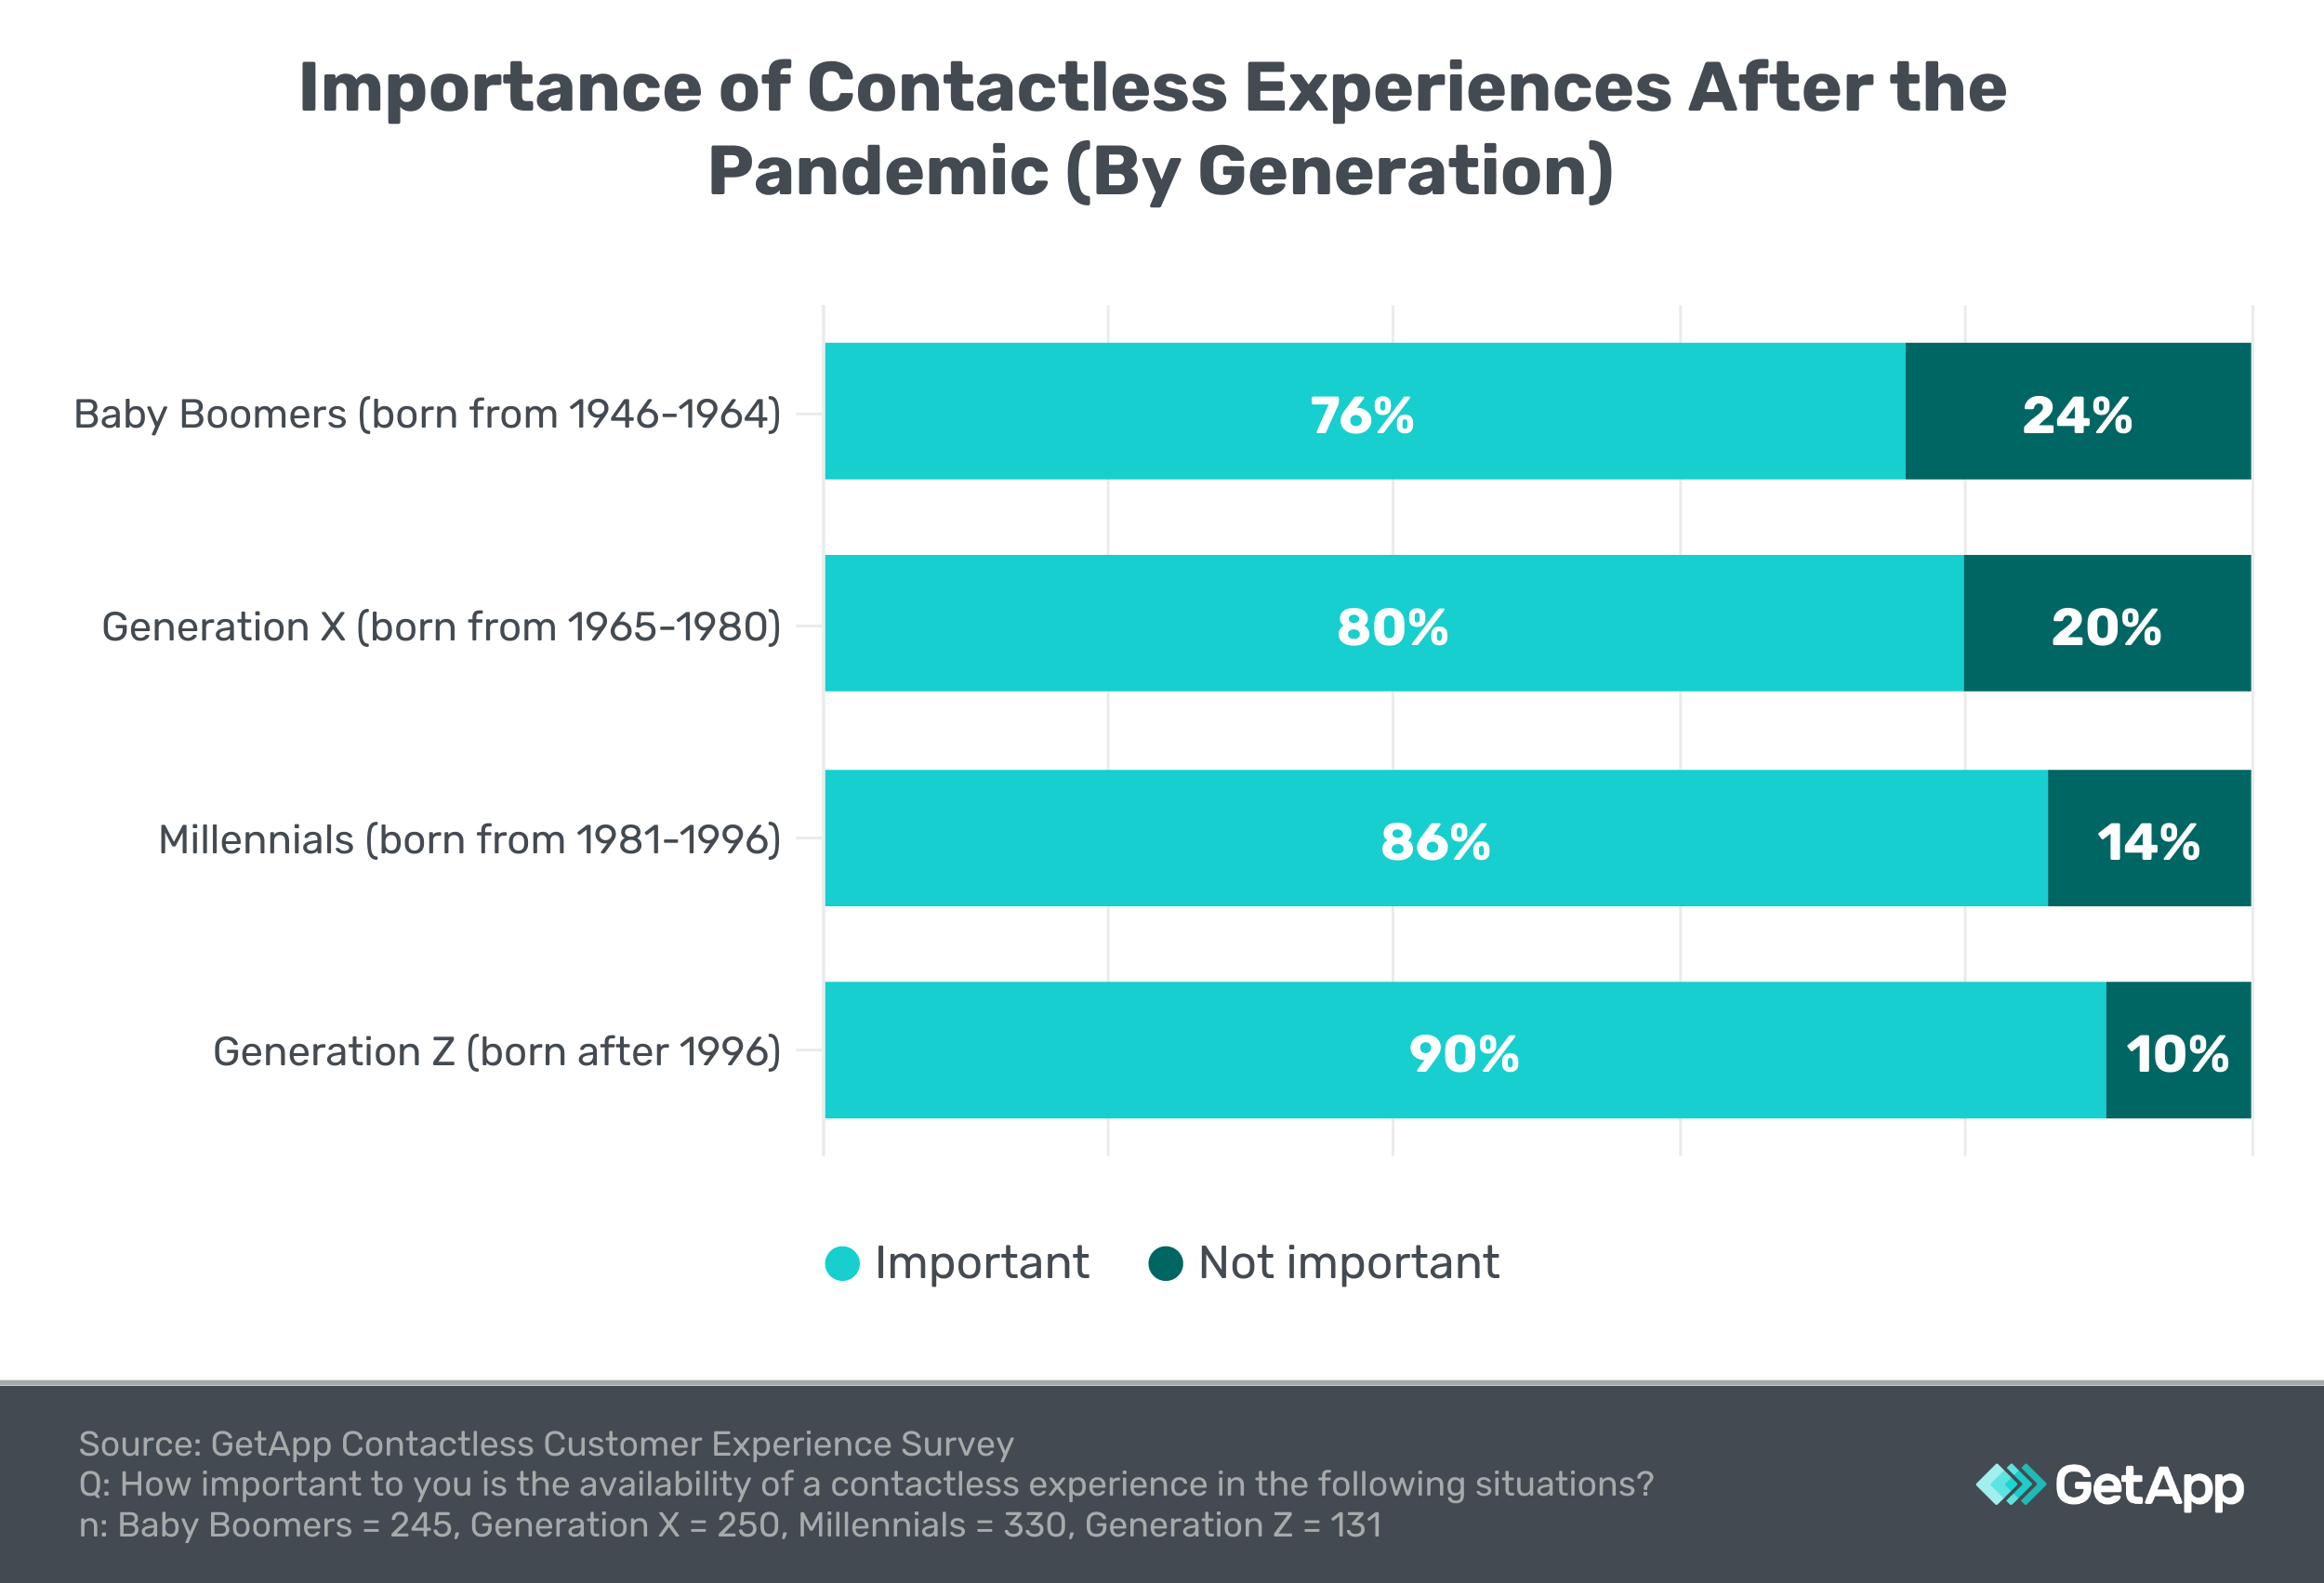 bar graph showing the importance of contactless experiences by generation